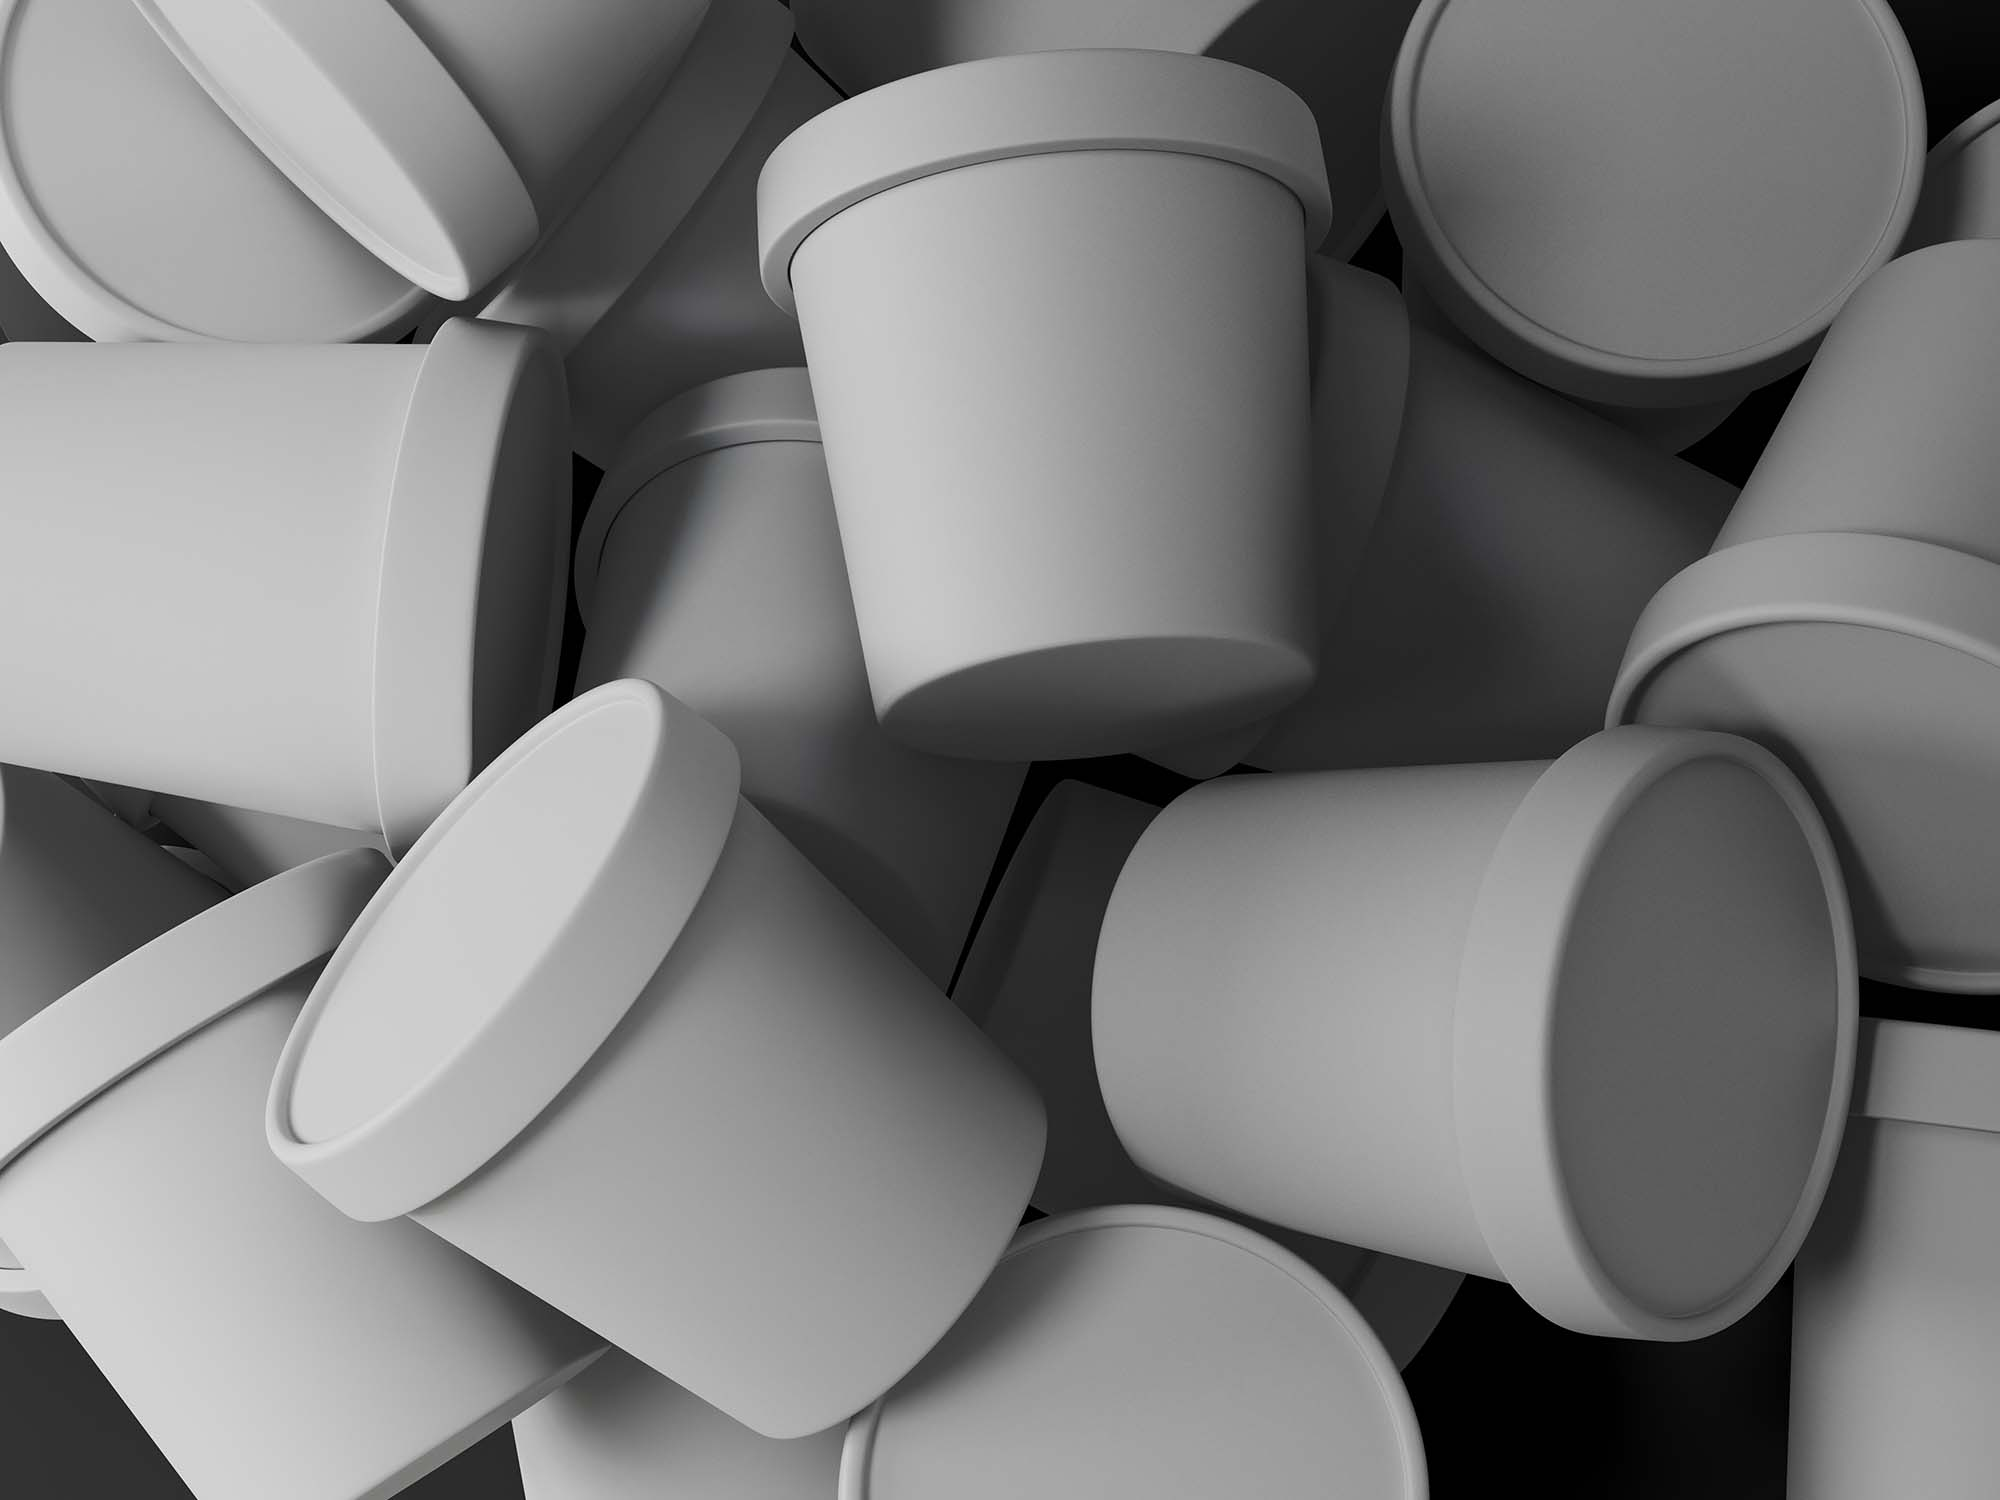 Scattered Ice Cream Cups Mockup 2